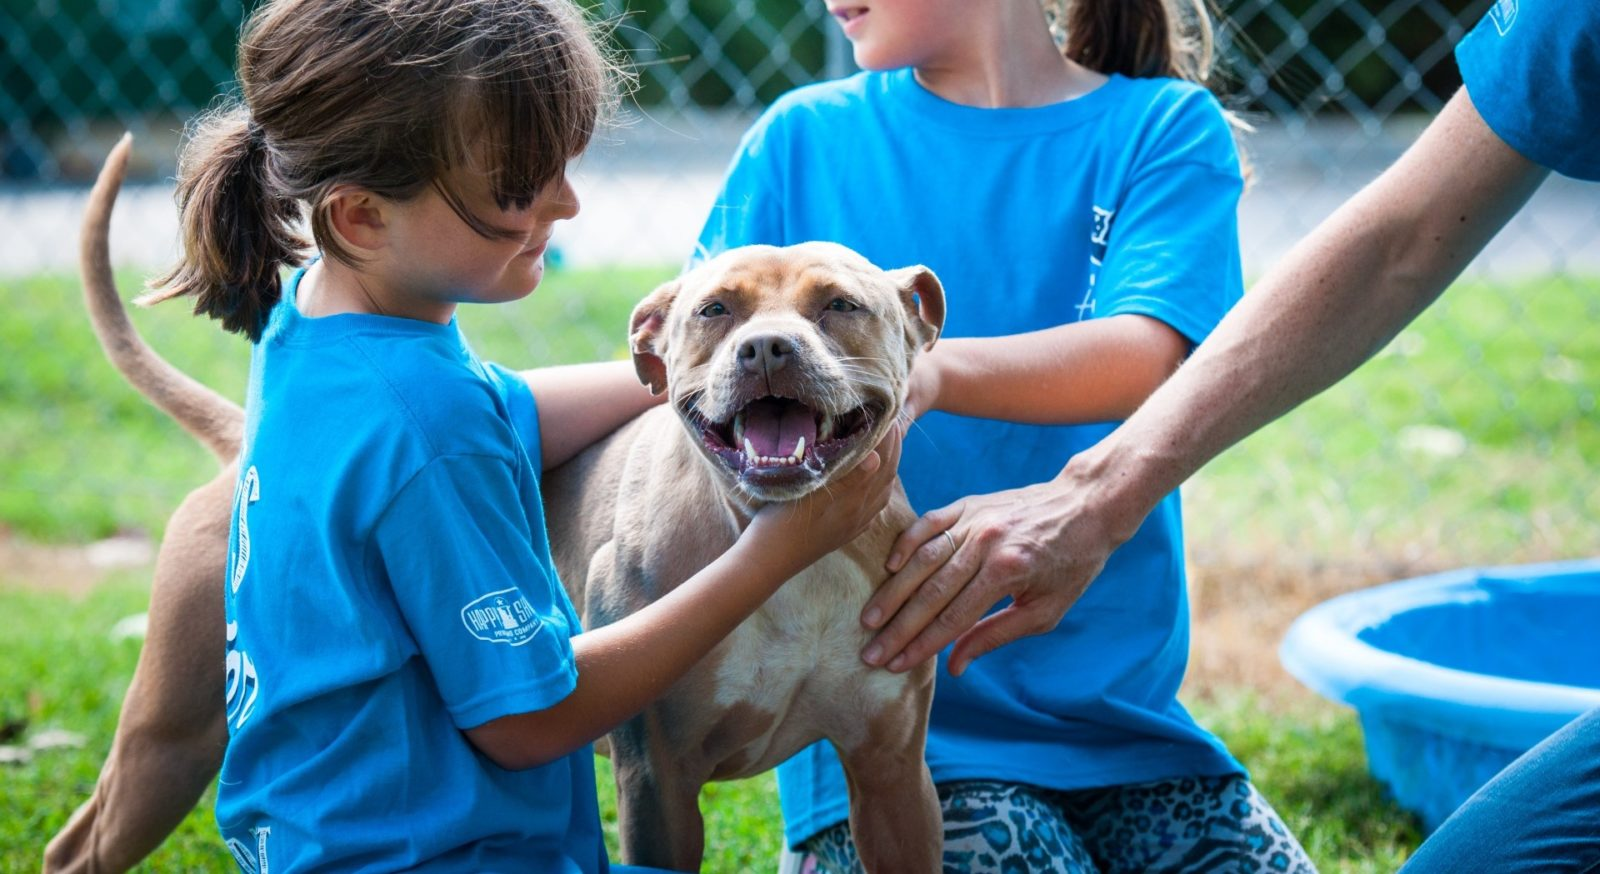 A dog being pet by animal shelter volunteers